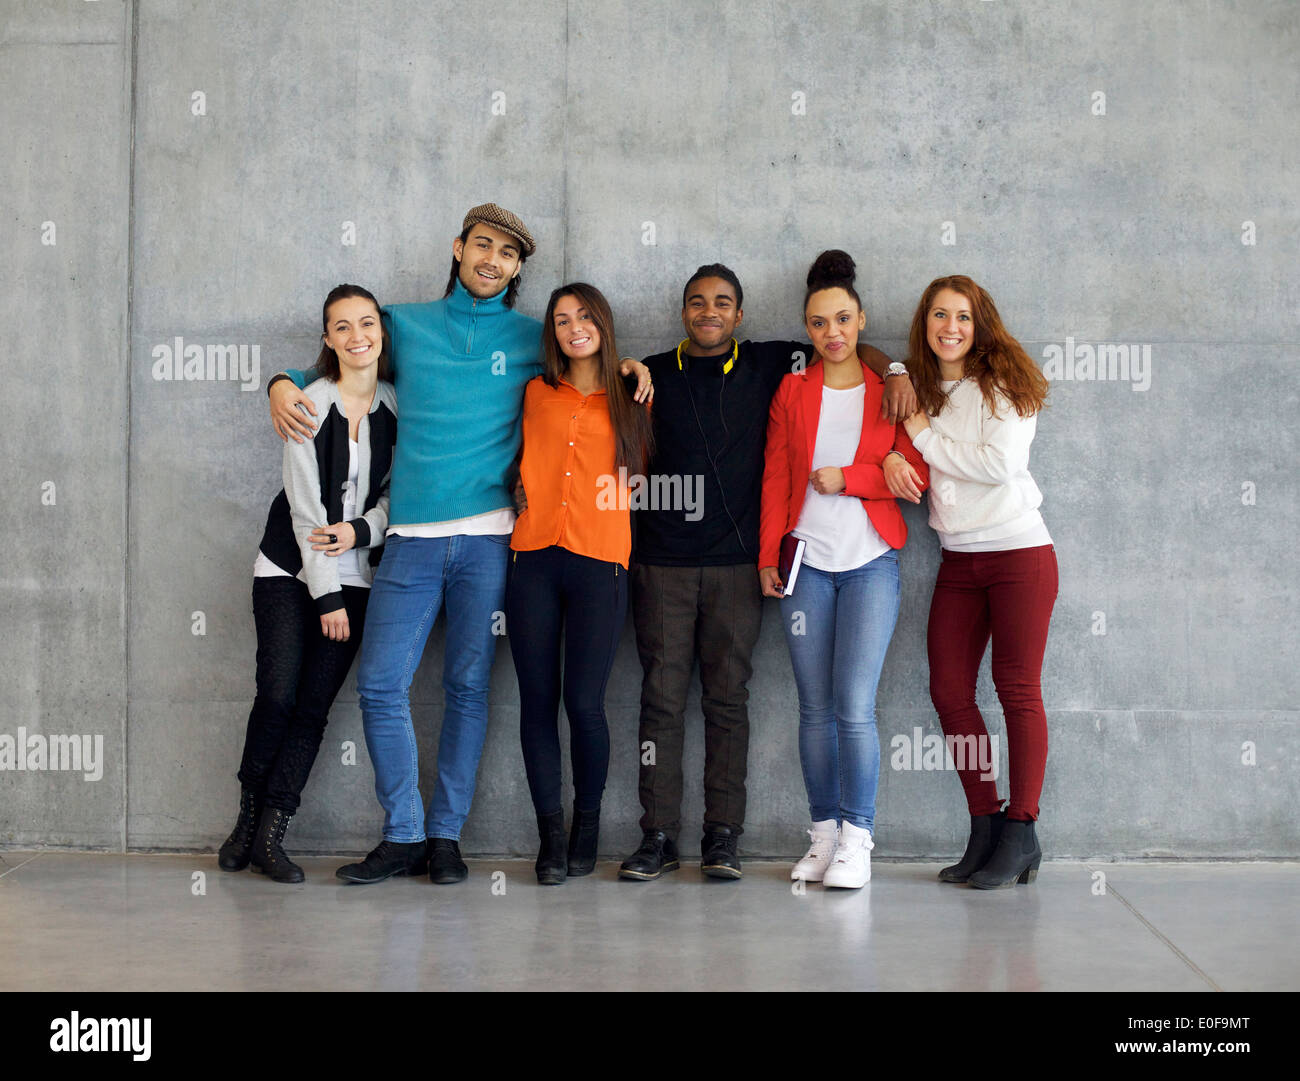 Multiethnic group of happy young university students on campus. Mixed race young people standing together against wall. - Stock Image